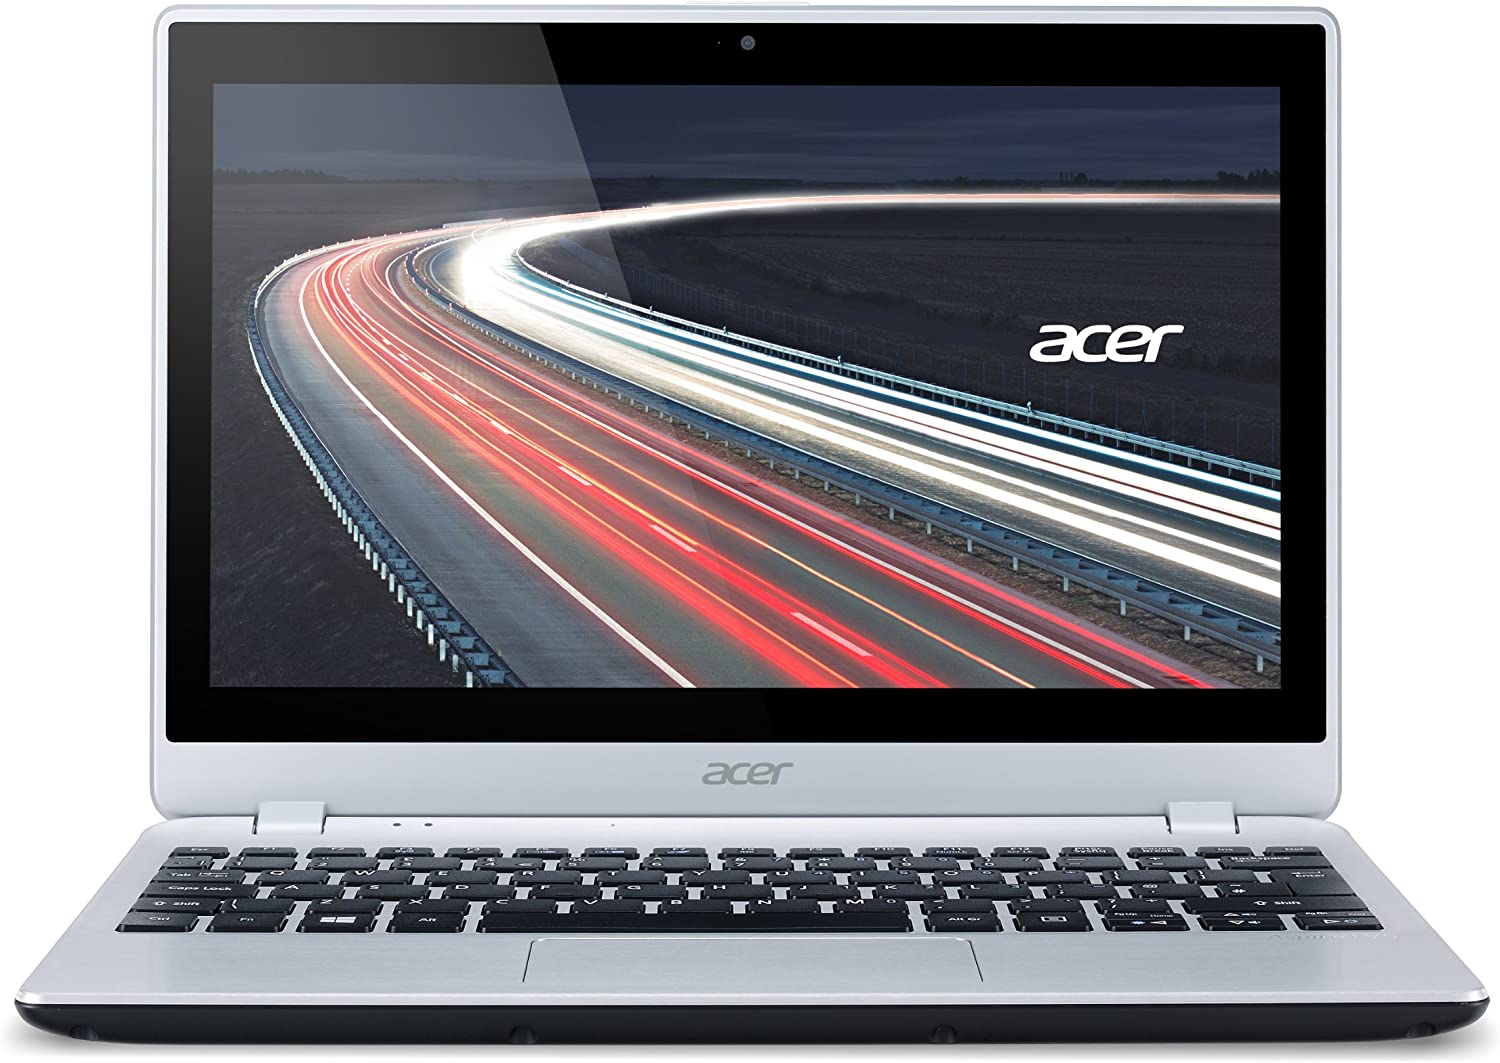 Acer Aspire V5-122P-0857 12-Inch Touchscreen Laptop (1 GHz A4-1250 A-Series processor, 4GB Ram, 500GB Hard Drive) Chill Silver